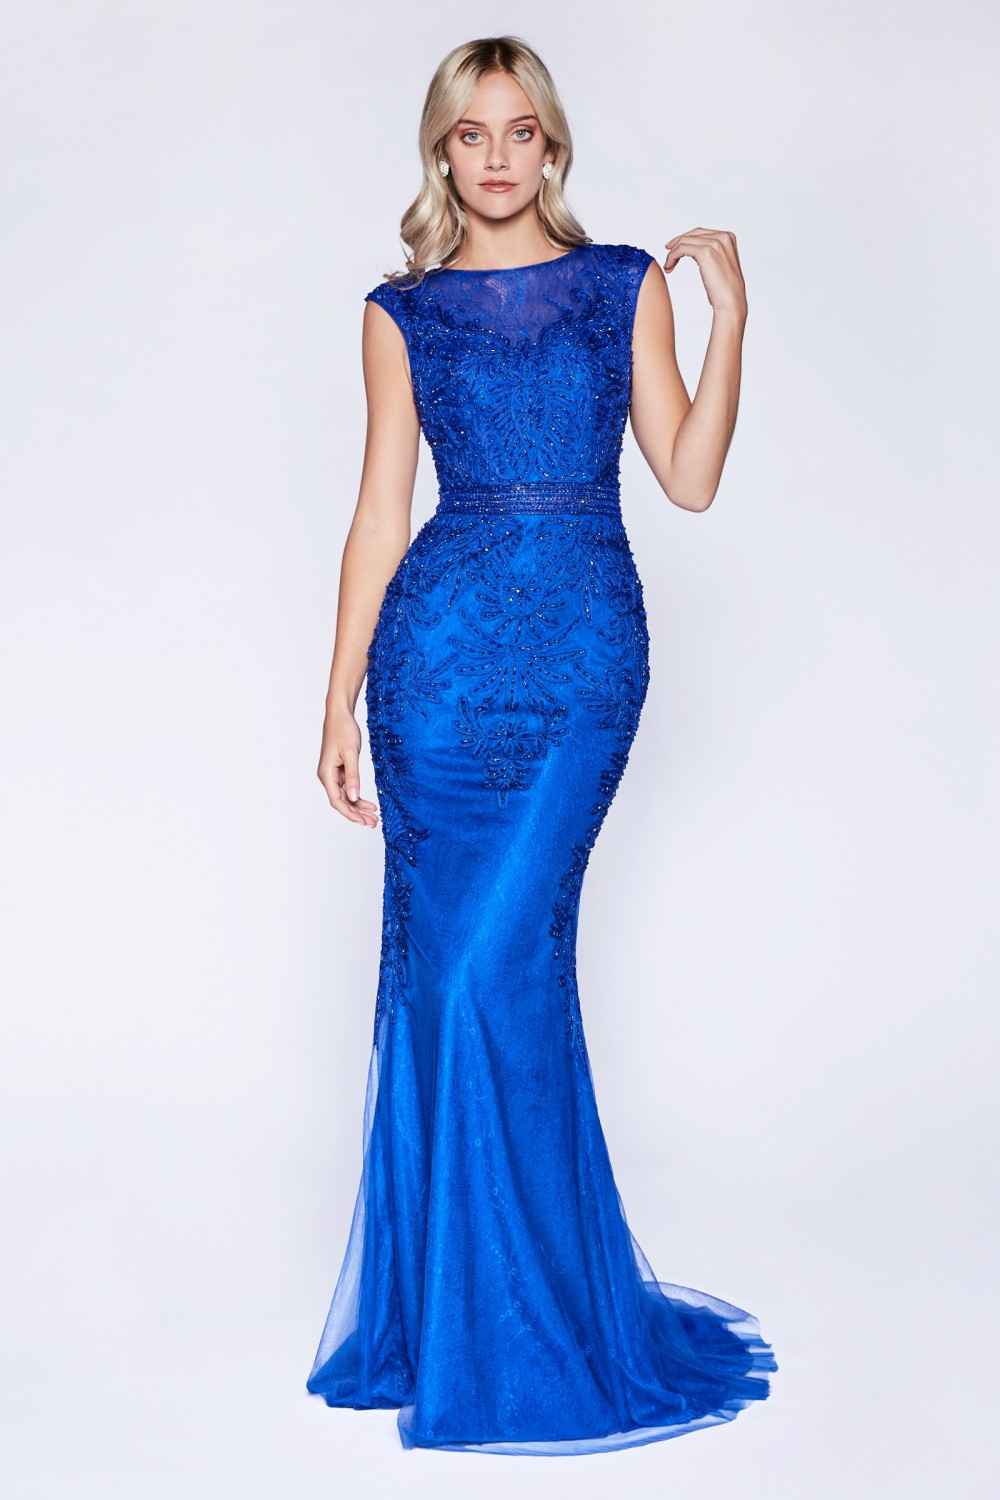 Royal Blue fitted lace gown with crystal beaded details and tulle overlay.